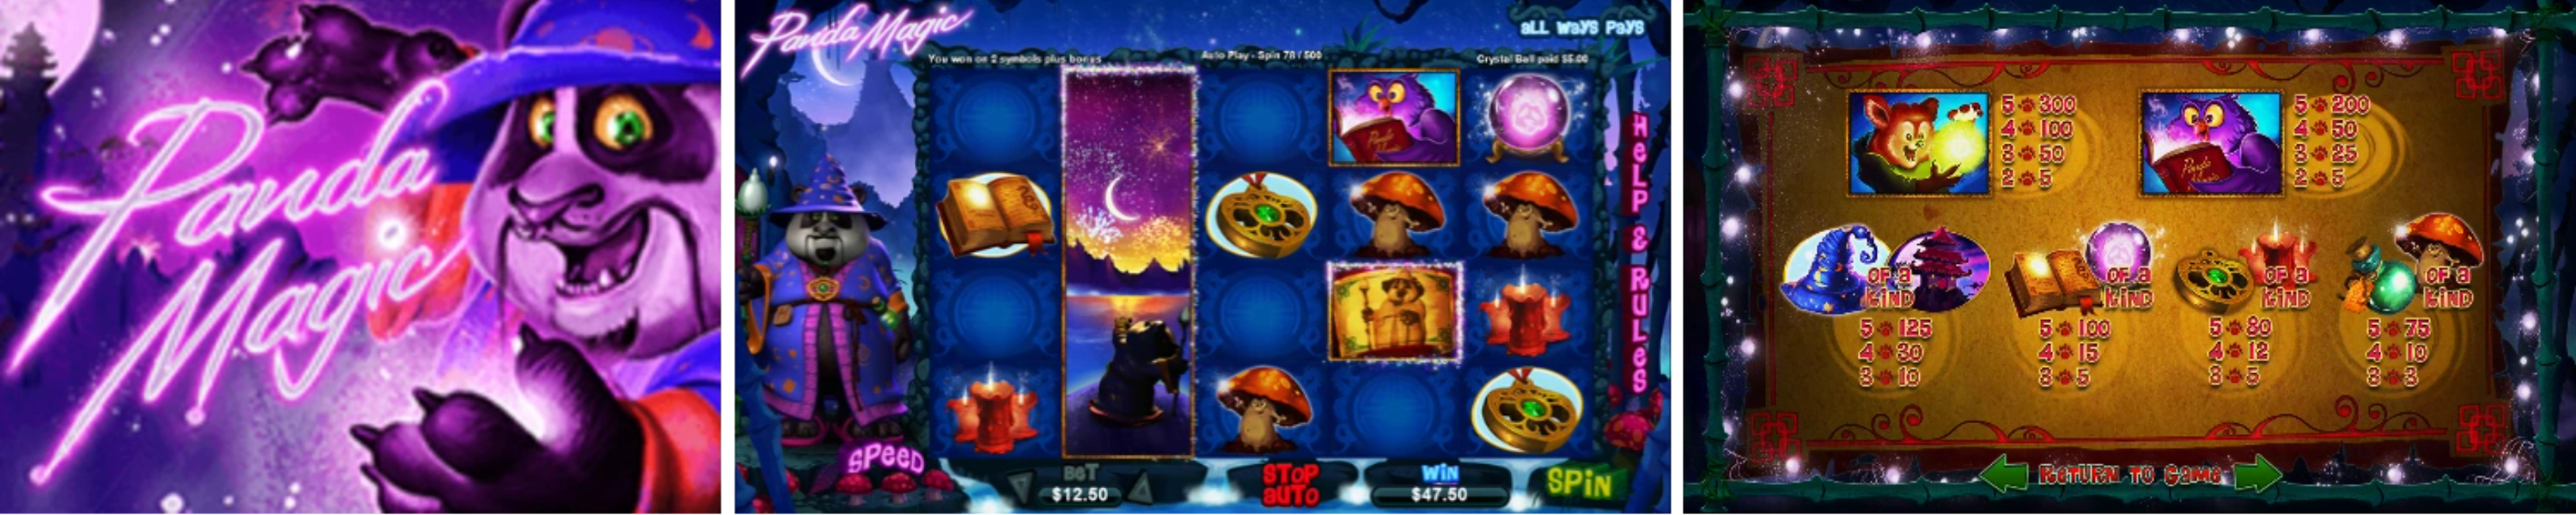 Panda Magic Video Slots review